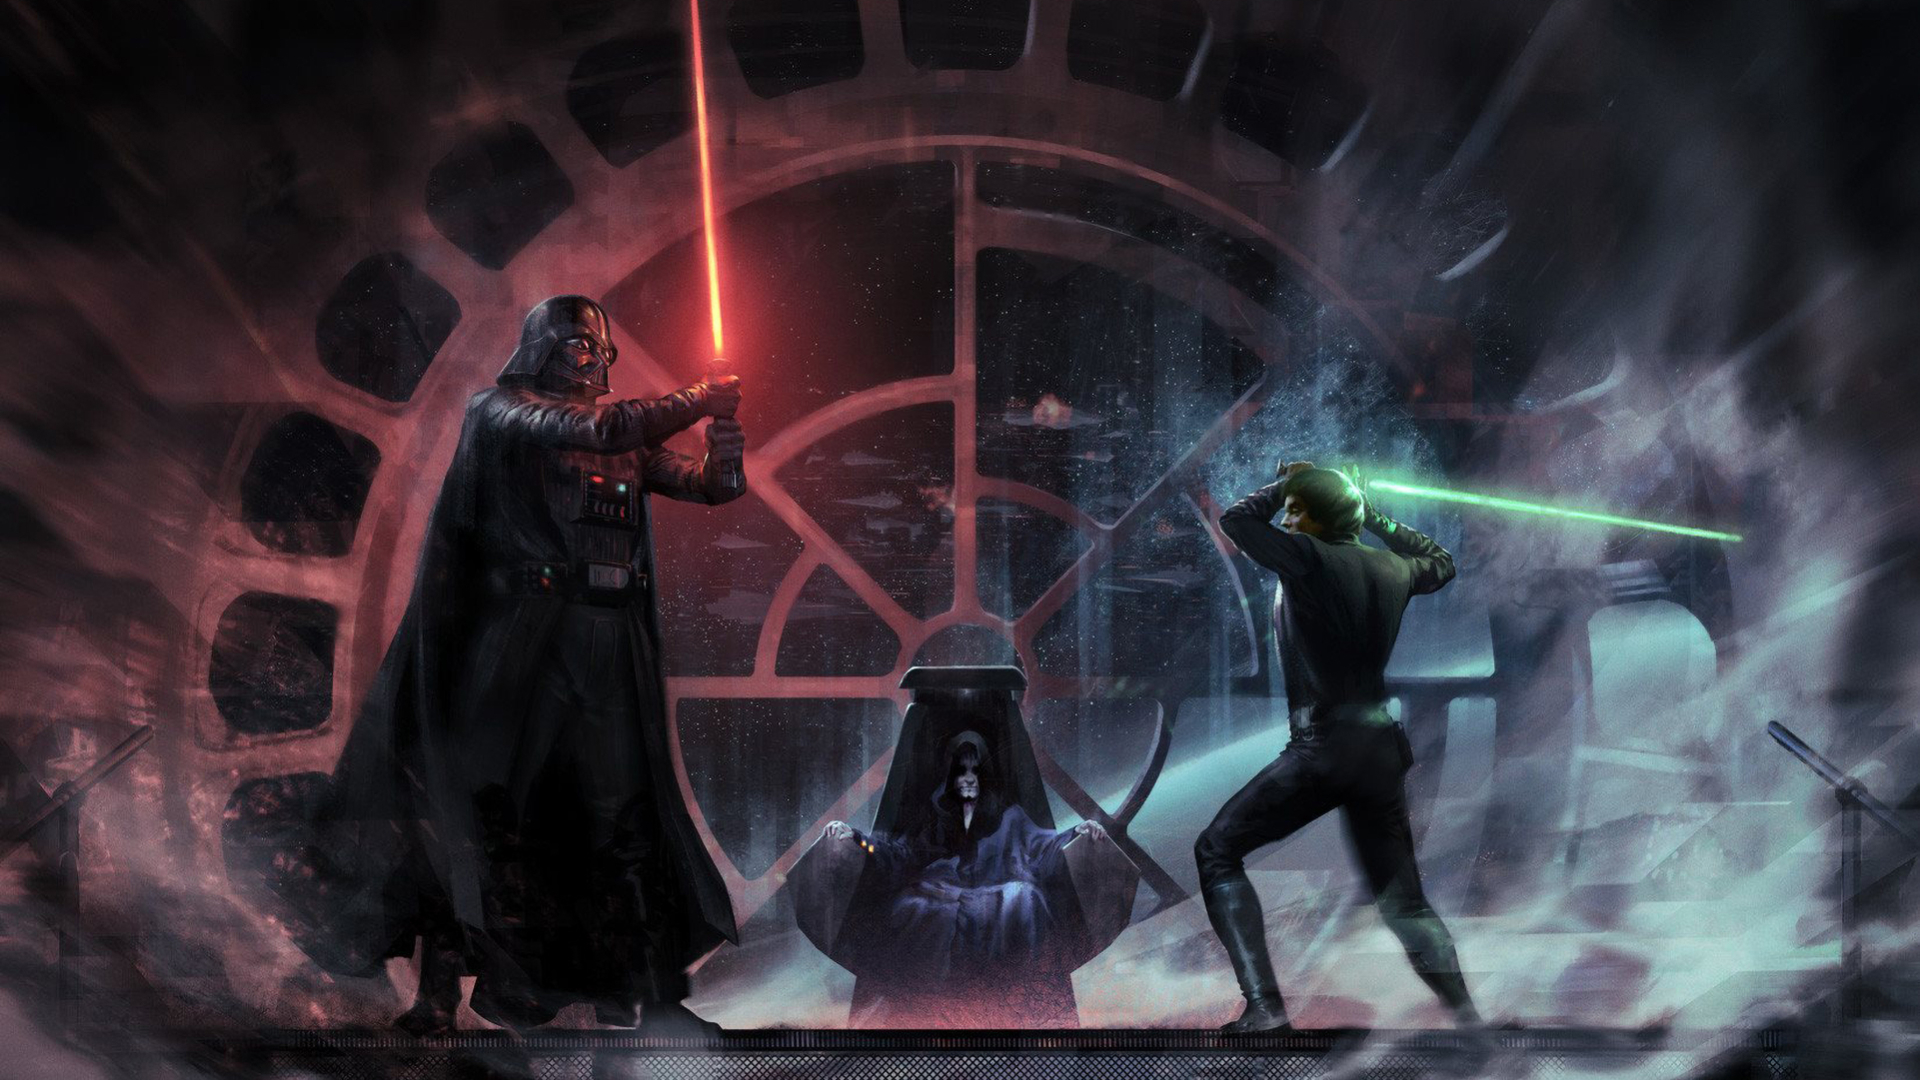 720x1520 Luke Skywalker Vs Darth Vader Emperor Palpatin 720x1520 Resolution Wallpaper Hd Movies 4k Wallpapers Images Photos And Background